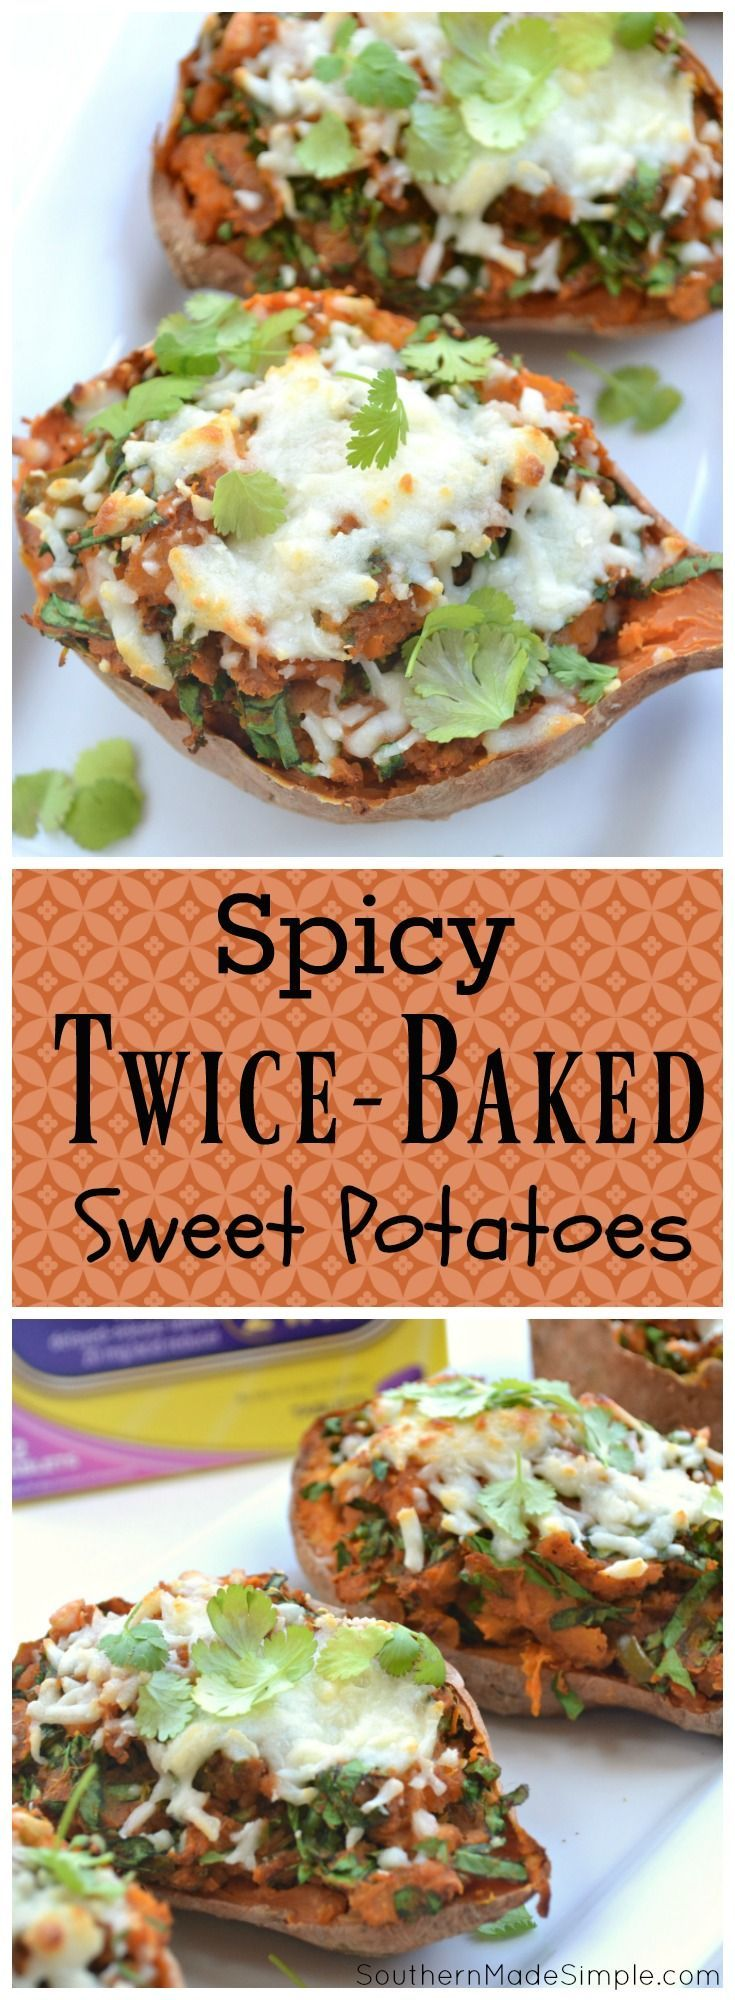 If you're looking for a way to spice up your Thanksgiving day menu, these spinach stuffed Spicy Twice-Baked sweet potatoes topped with gooey mozzarella cheese are a great way to do it! Forget everything you thought you knew about sweet potatoes, these bad